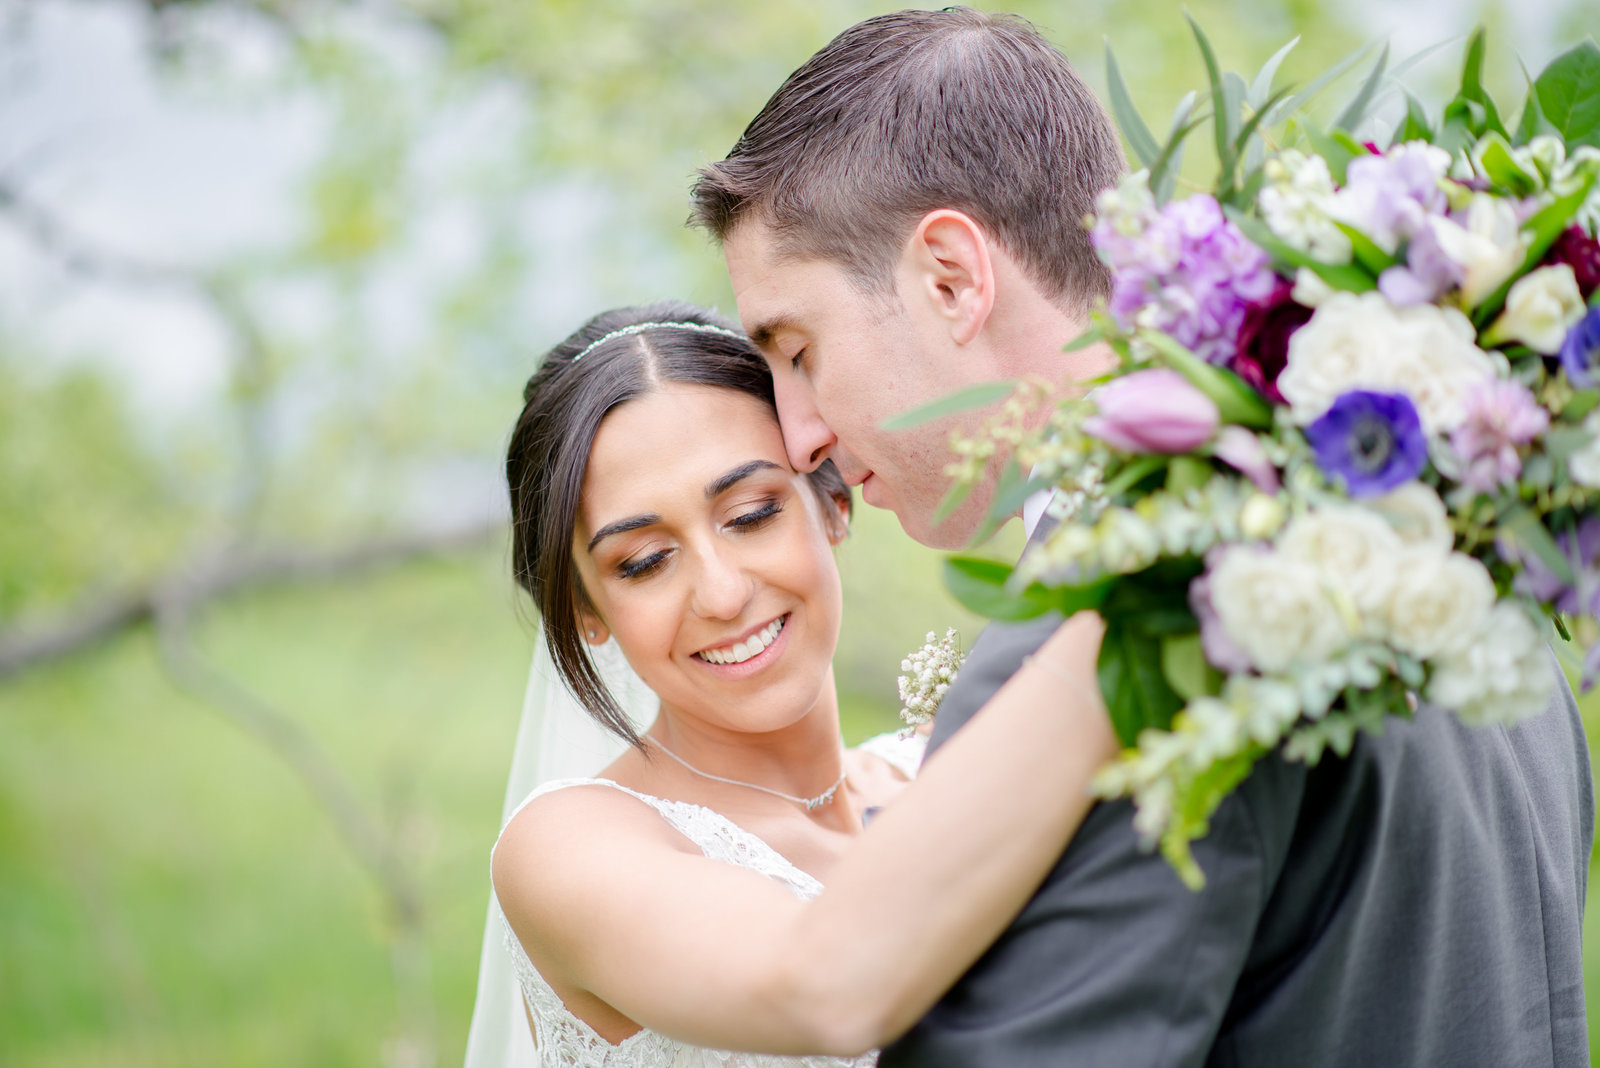 Rustic Barn Wedding Pennsylvania-Rodale Institute Wedding Raquel and Daniel Wedding 21999-18